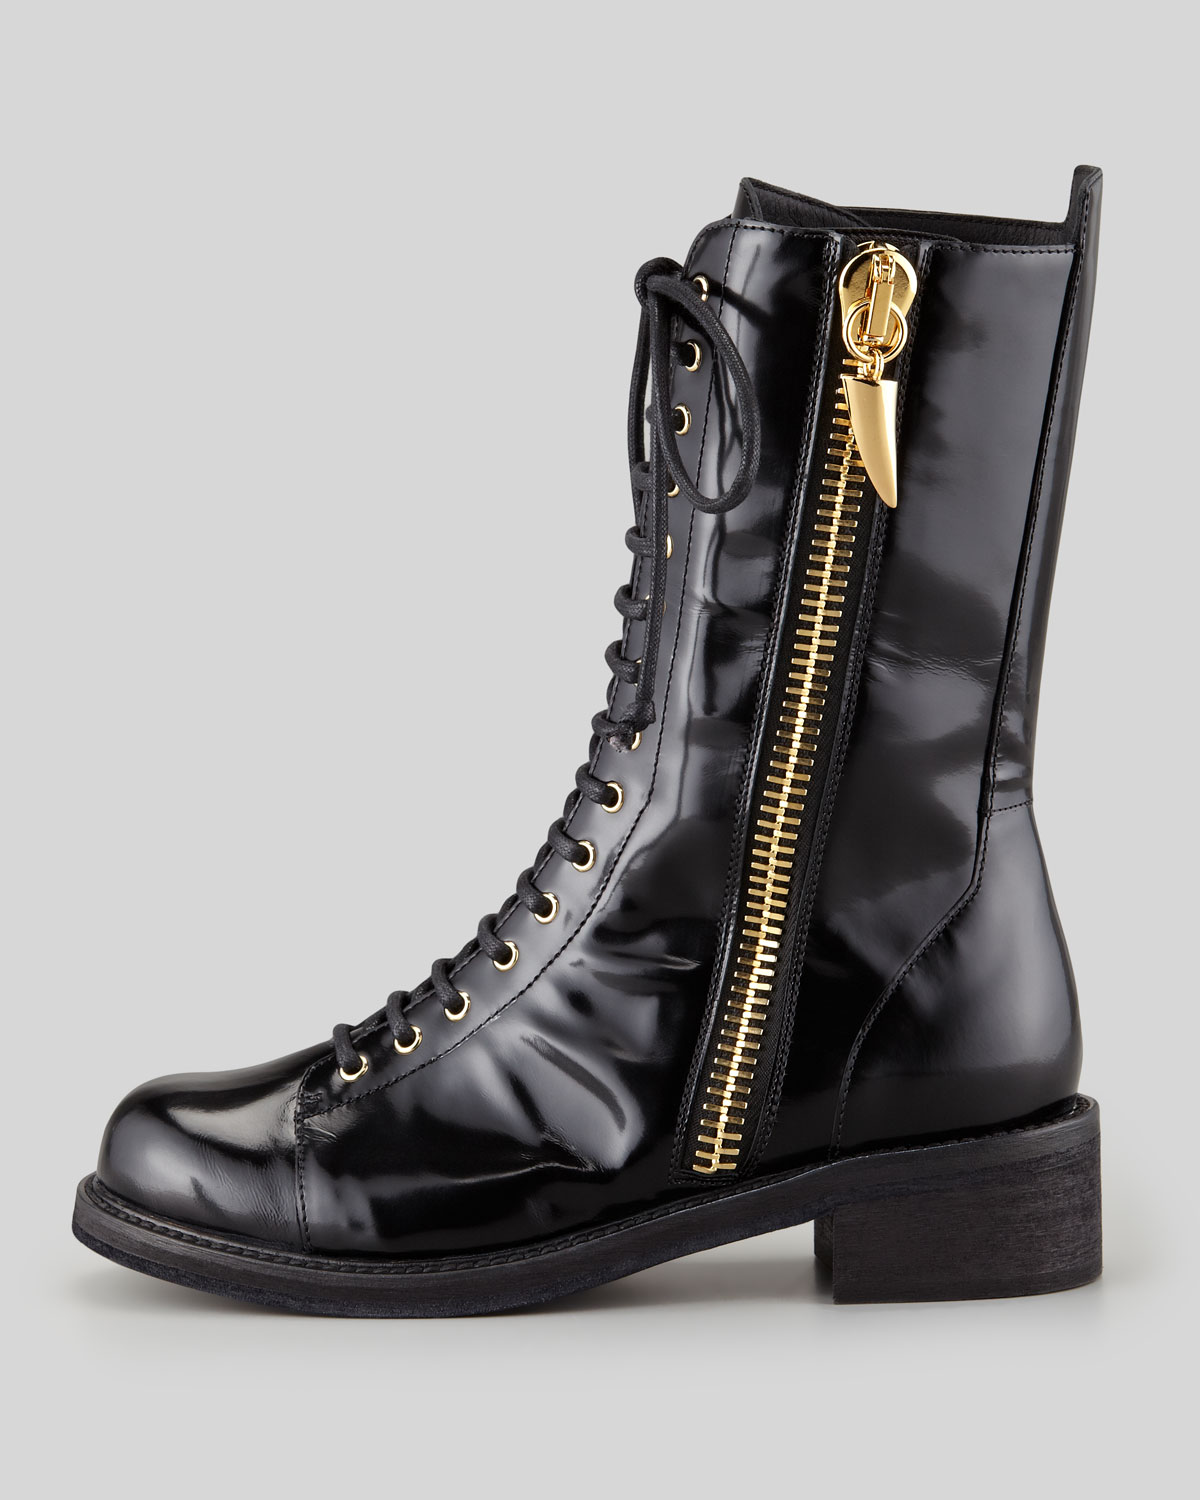 1e2758dca6304 Gallery. Previously sold at: Bergdorf Goodman, Neiman Marcus · Women's  Combat Boots